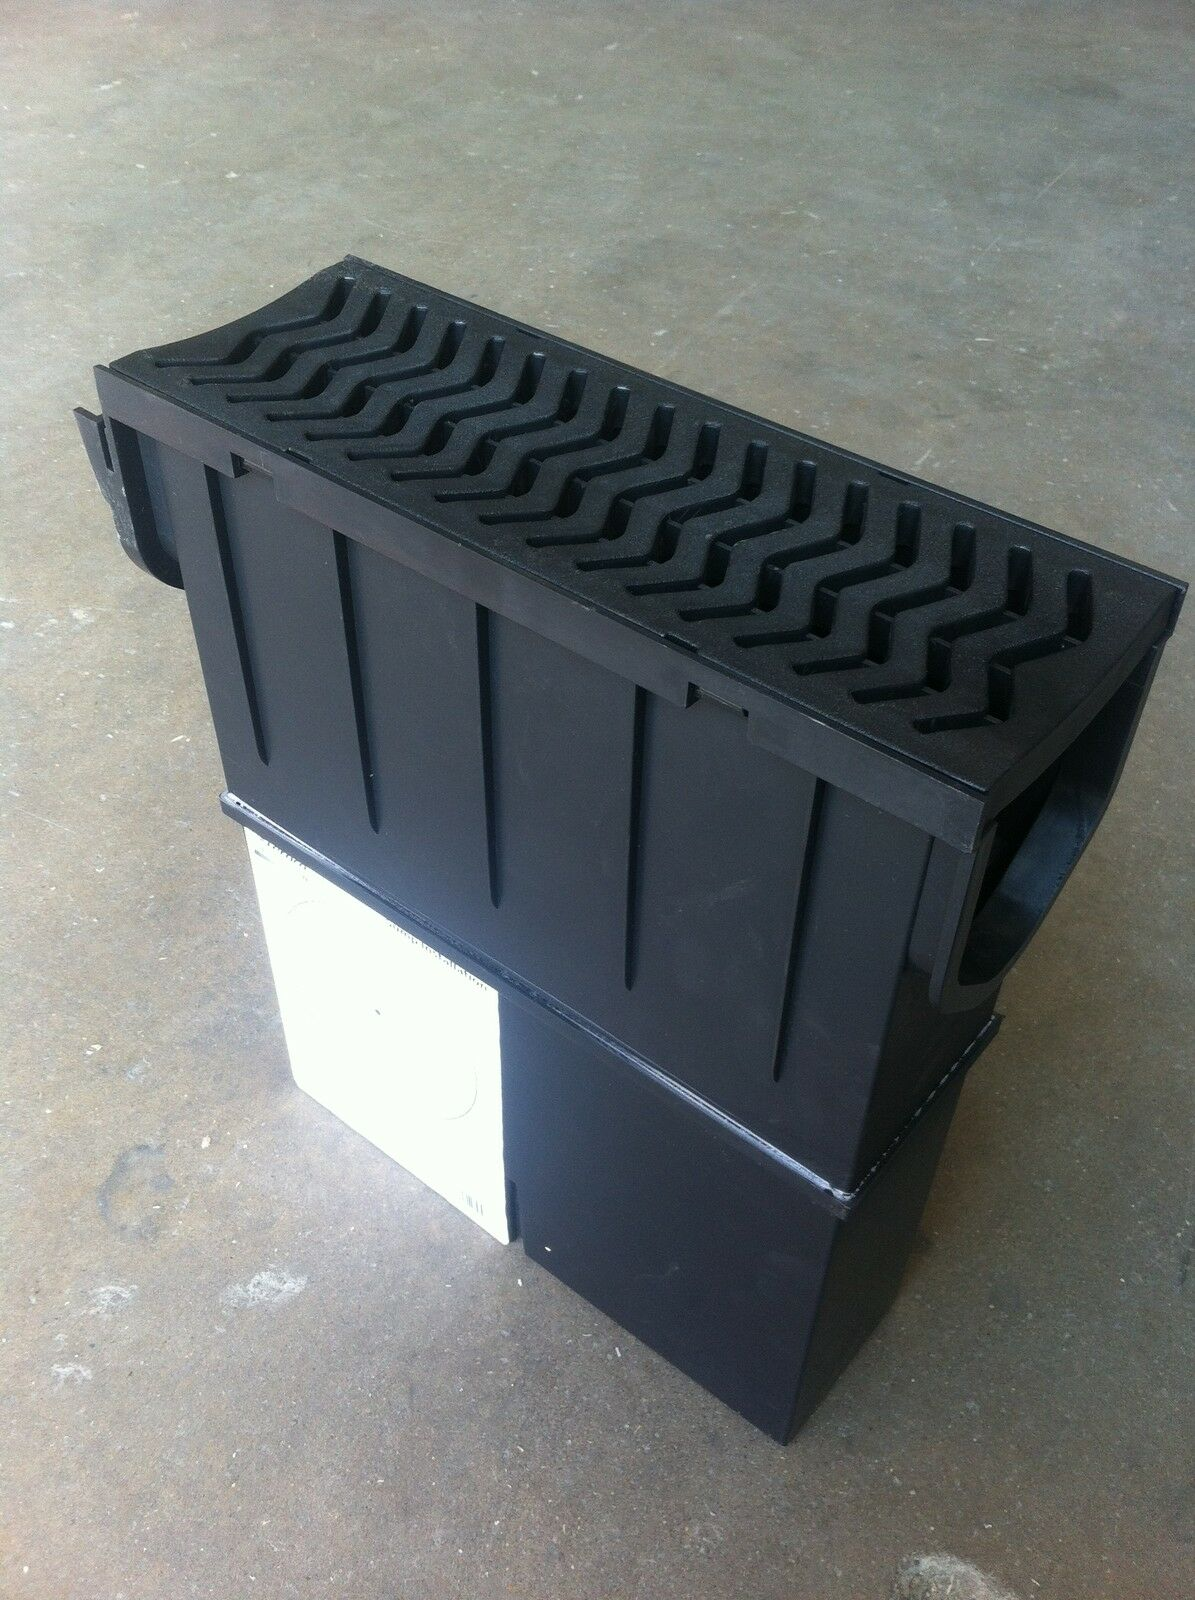 Drainage Collection Boxes : Drainage channel pvc topped heelguard sump box fernco